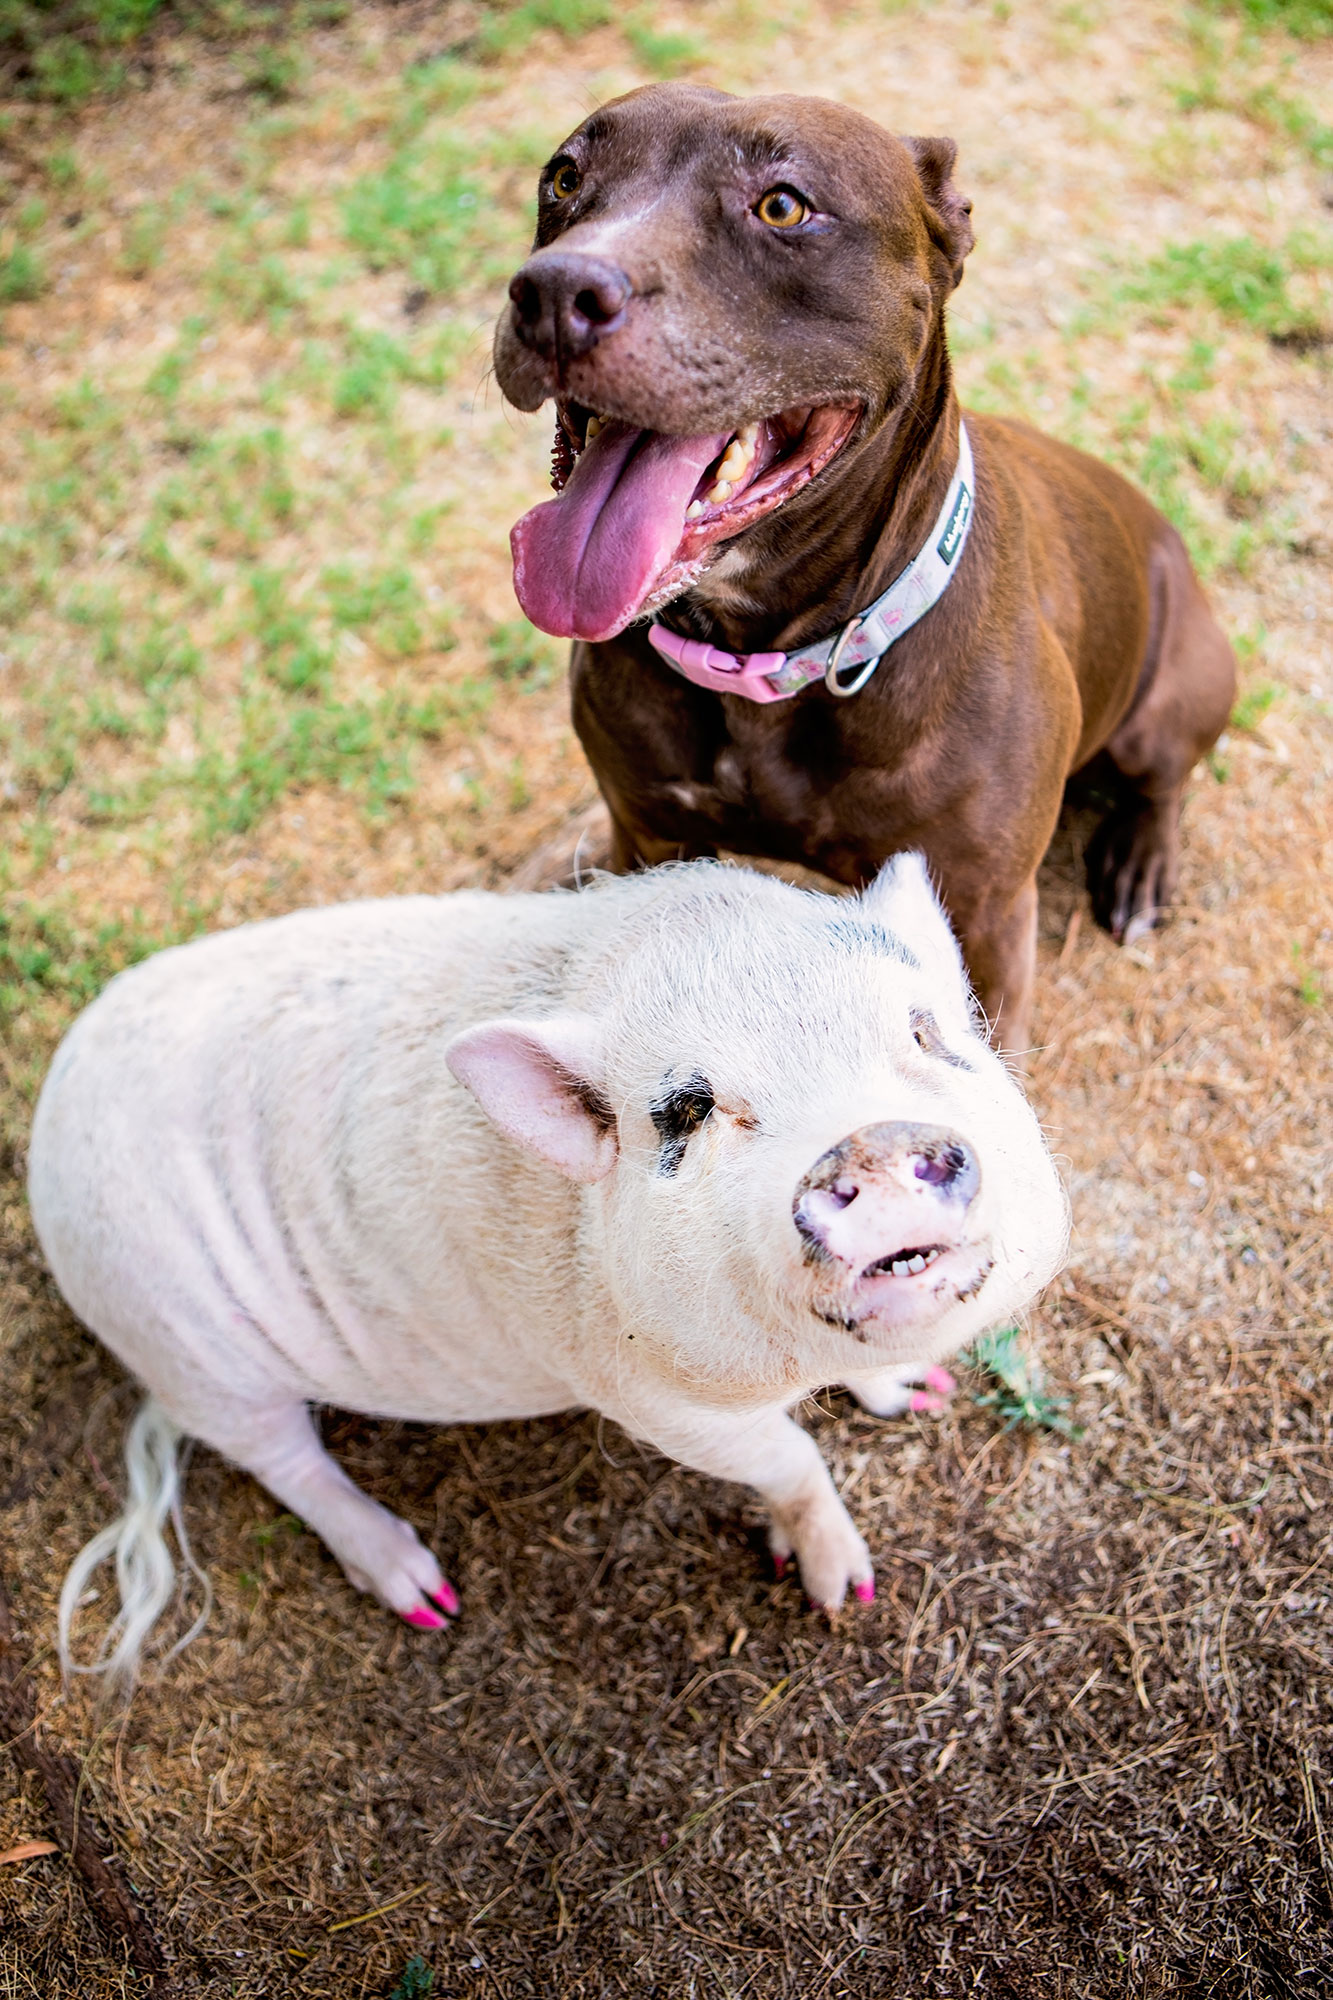 Pit Bull and Pig